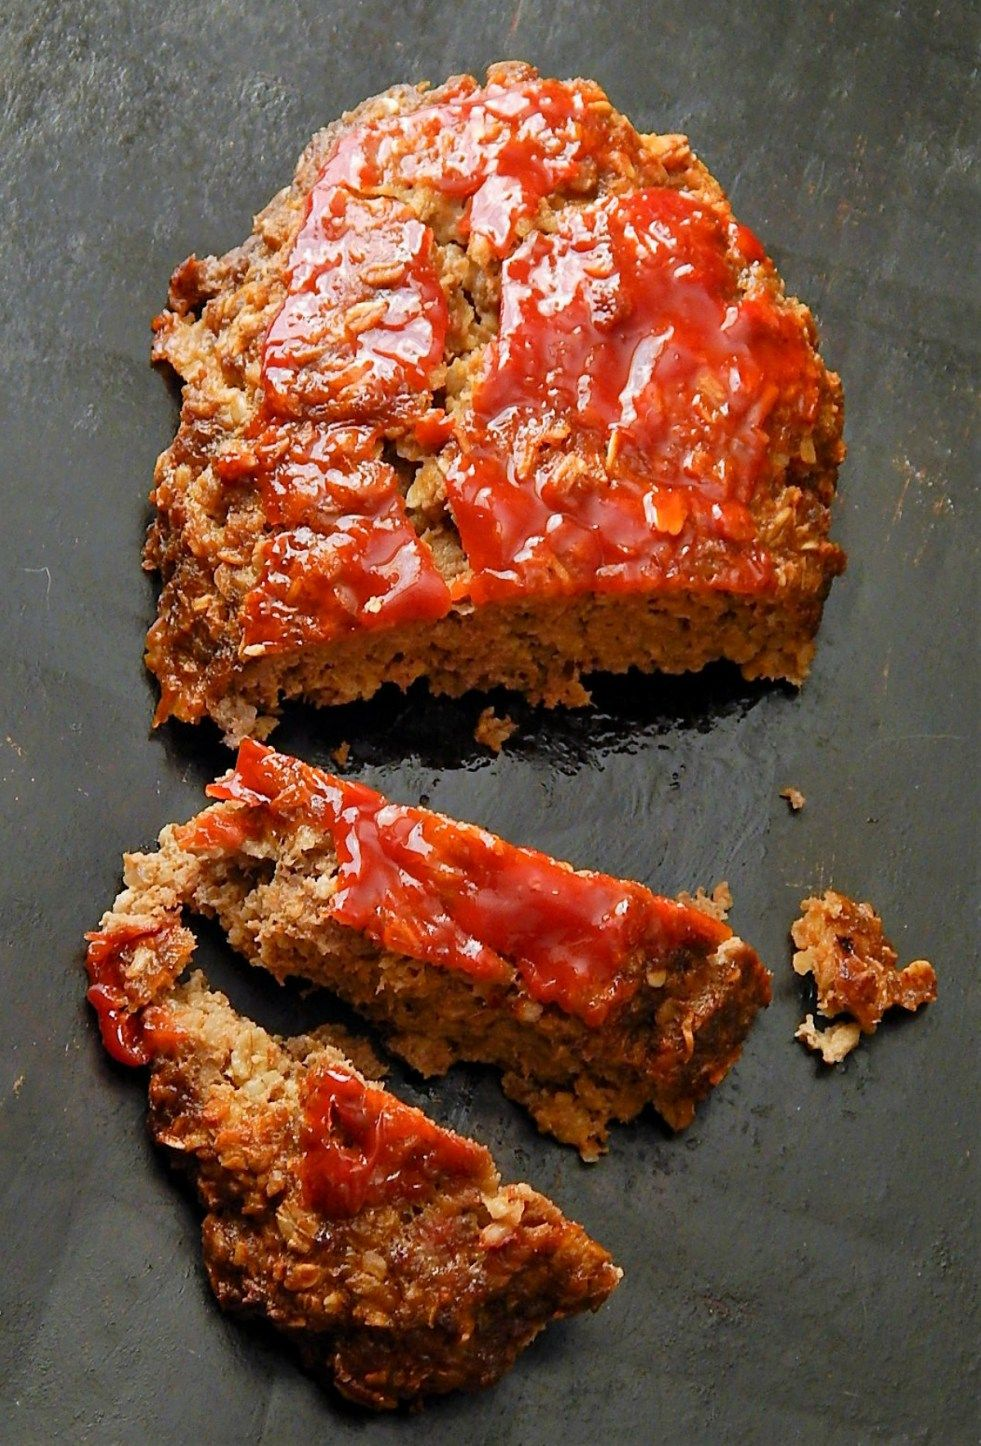 Classic Quaker Oats Meatloaf Classic Meatloaf Recipe Meatloaf With Oatmeal Meat Loaf Recipe Easy